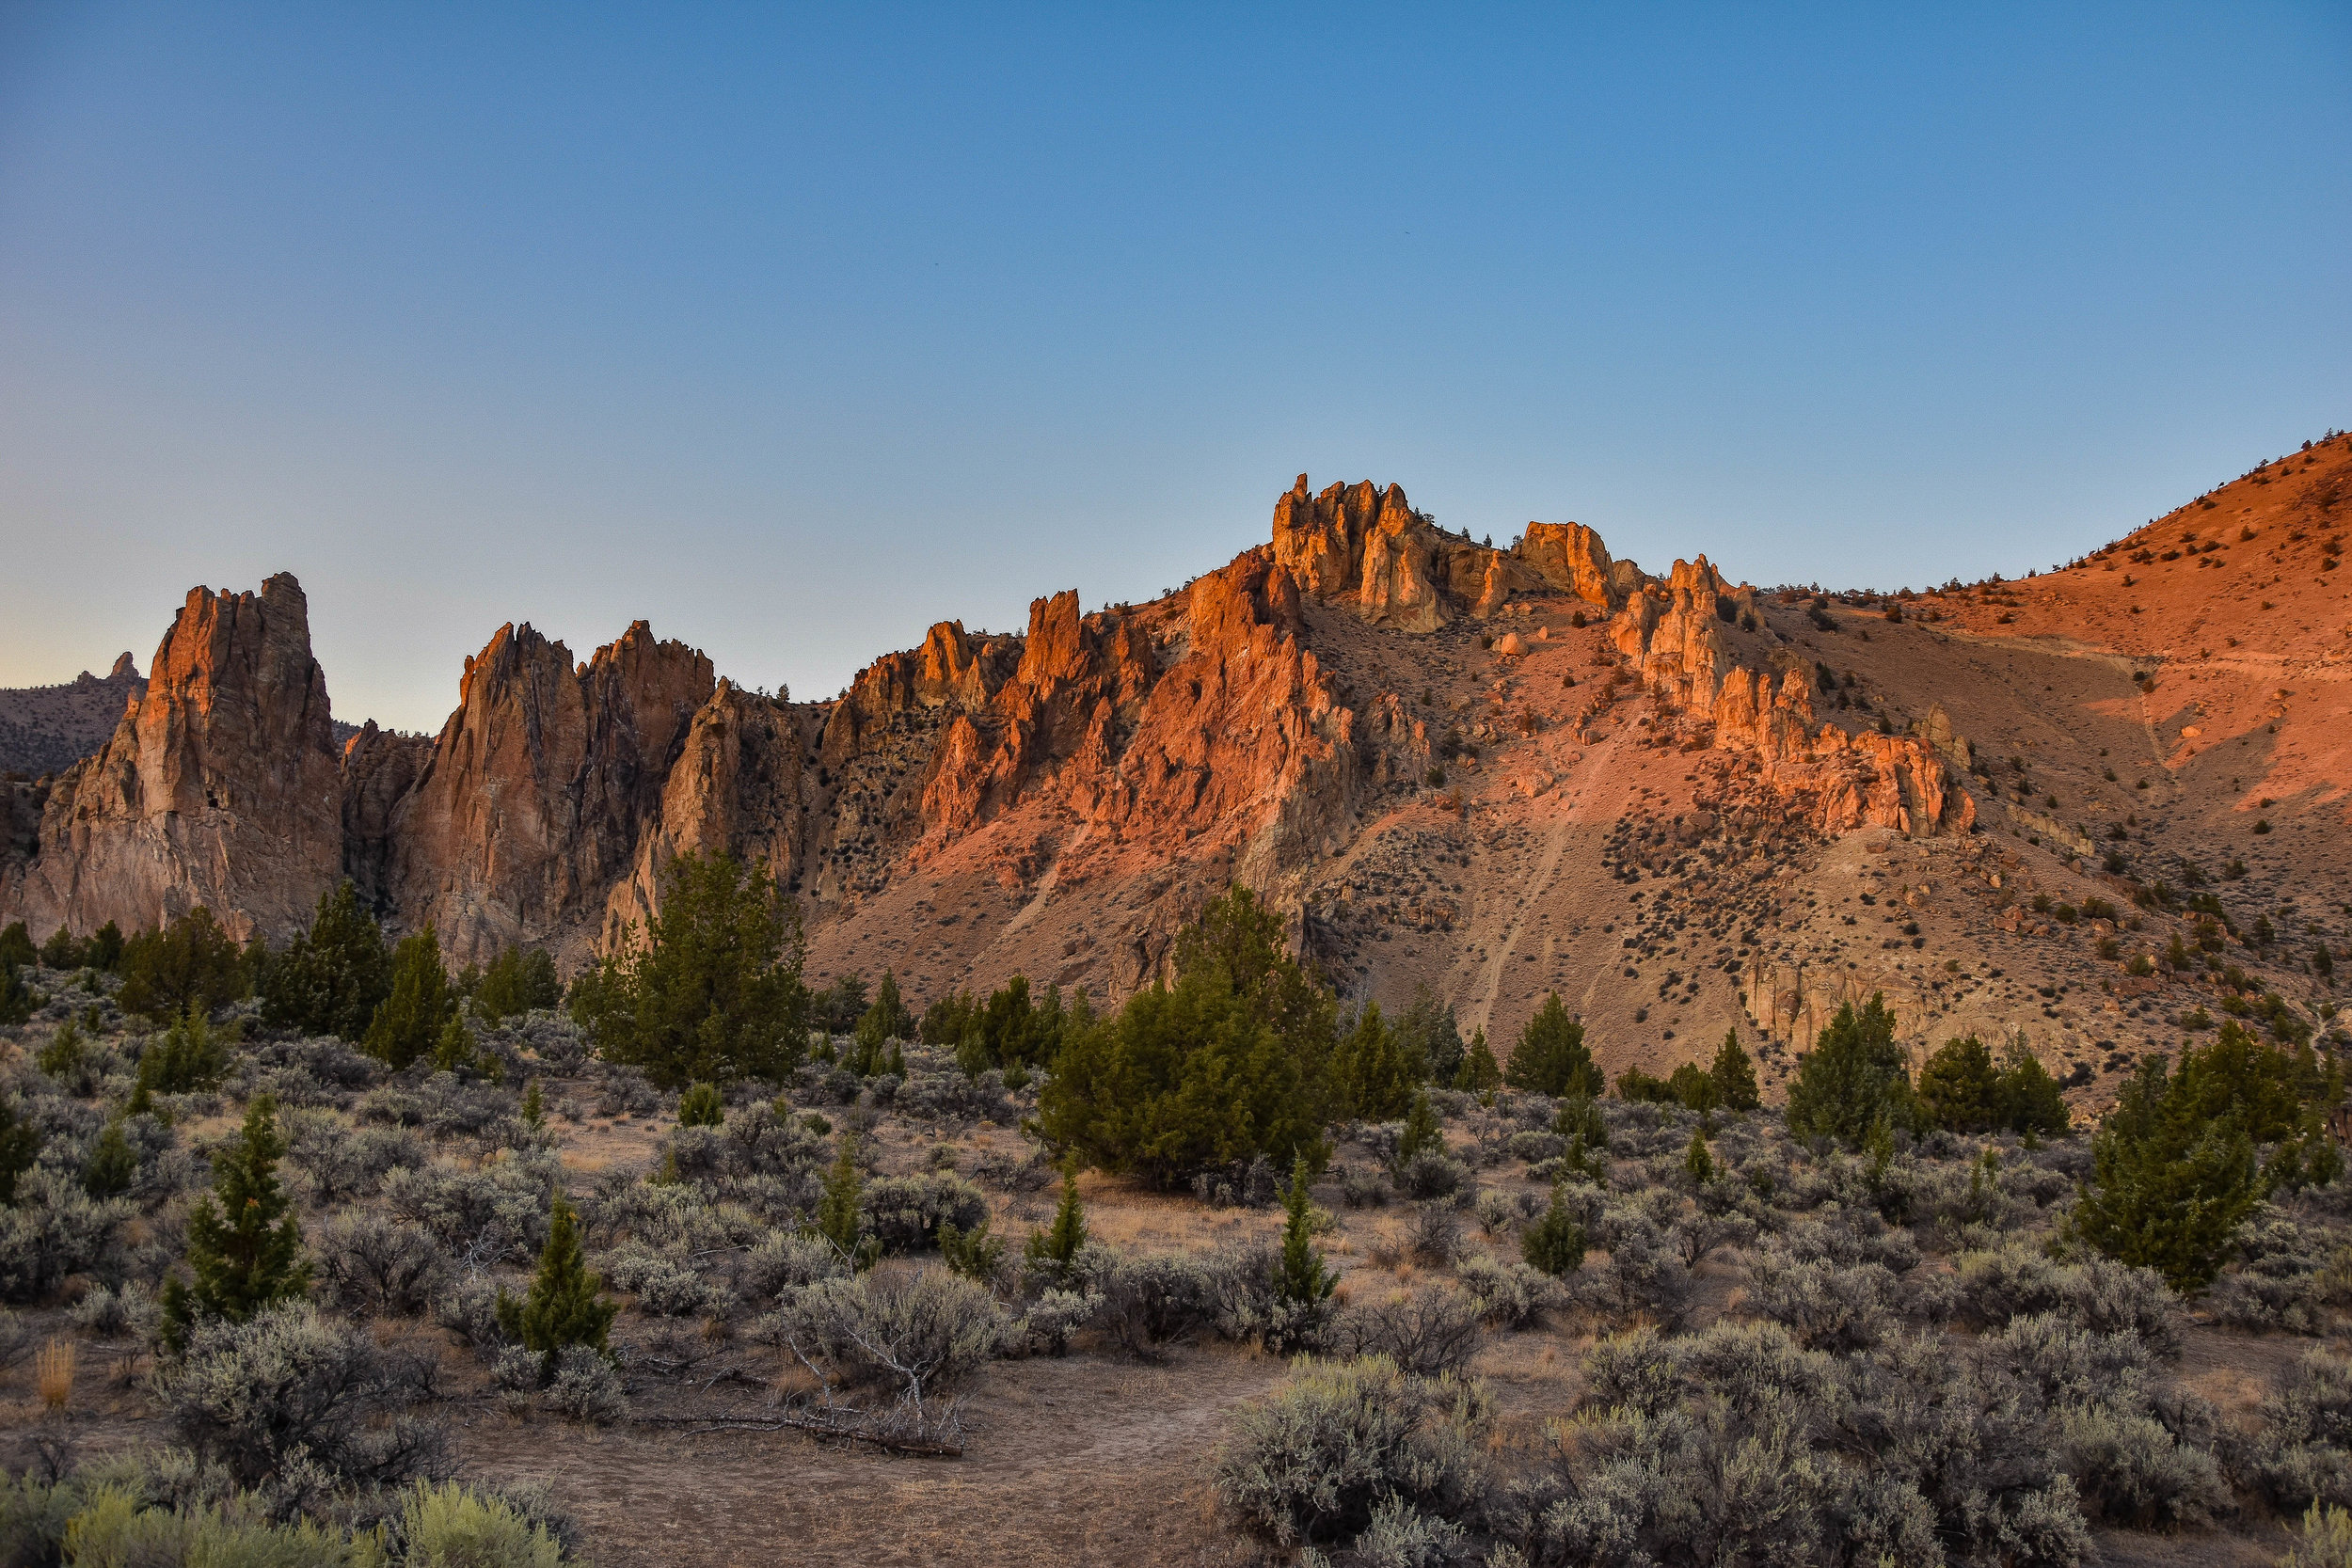 SMITH ROCK STATE PARK - Whether you come for the climb or come to unwind, you'll see why Smith Rock is one of the 7 Wonders of Oregon.